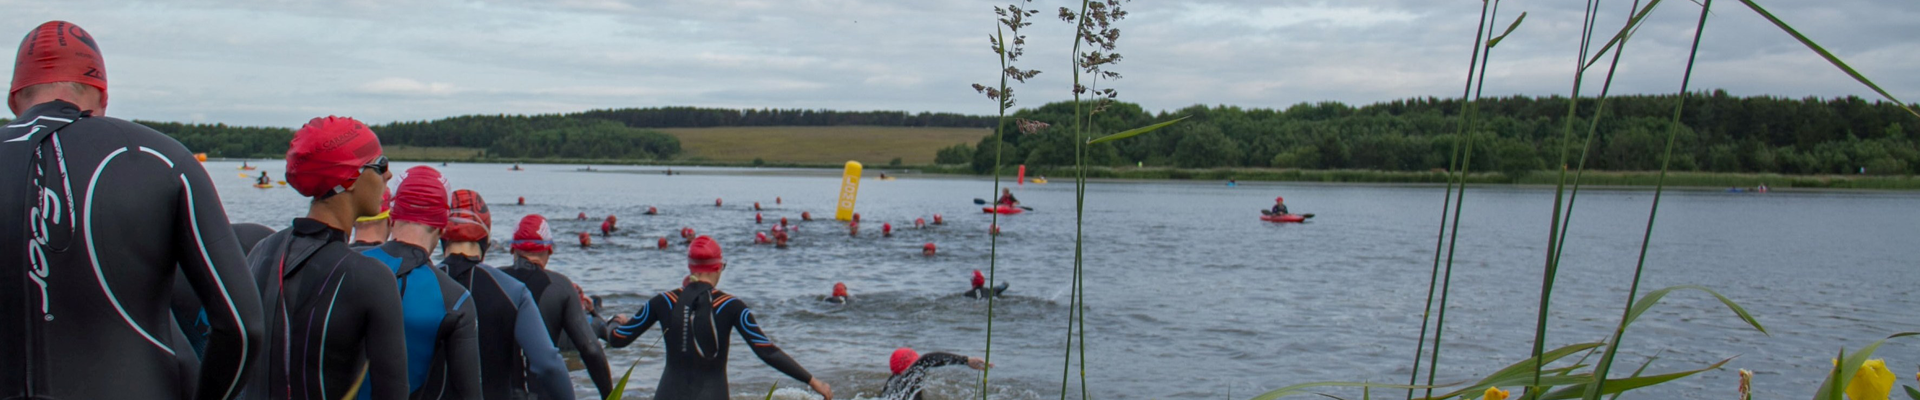 Northumberland Triathlon 2018